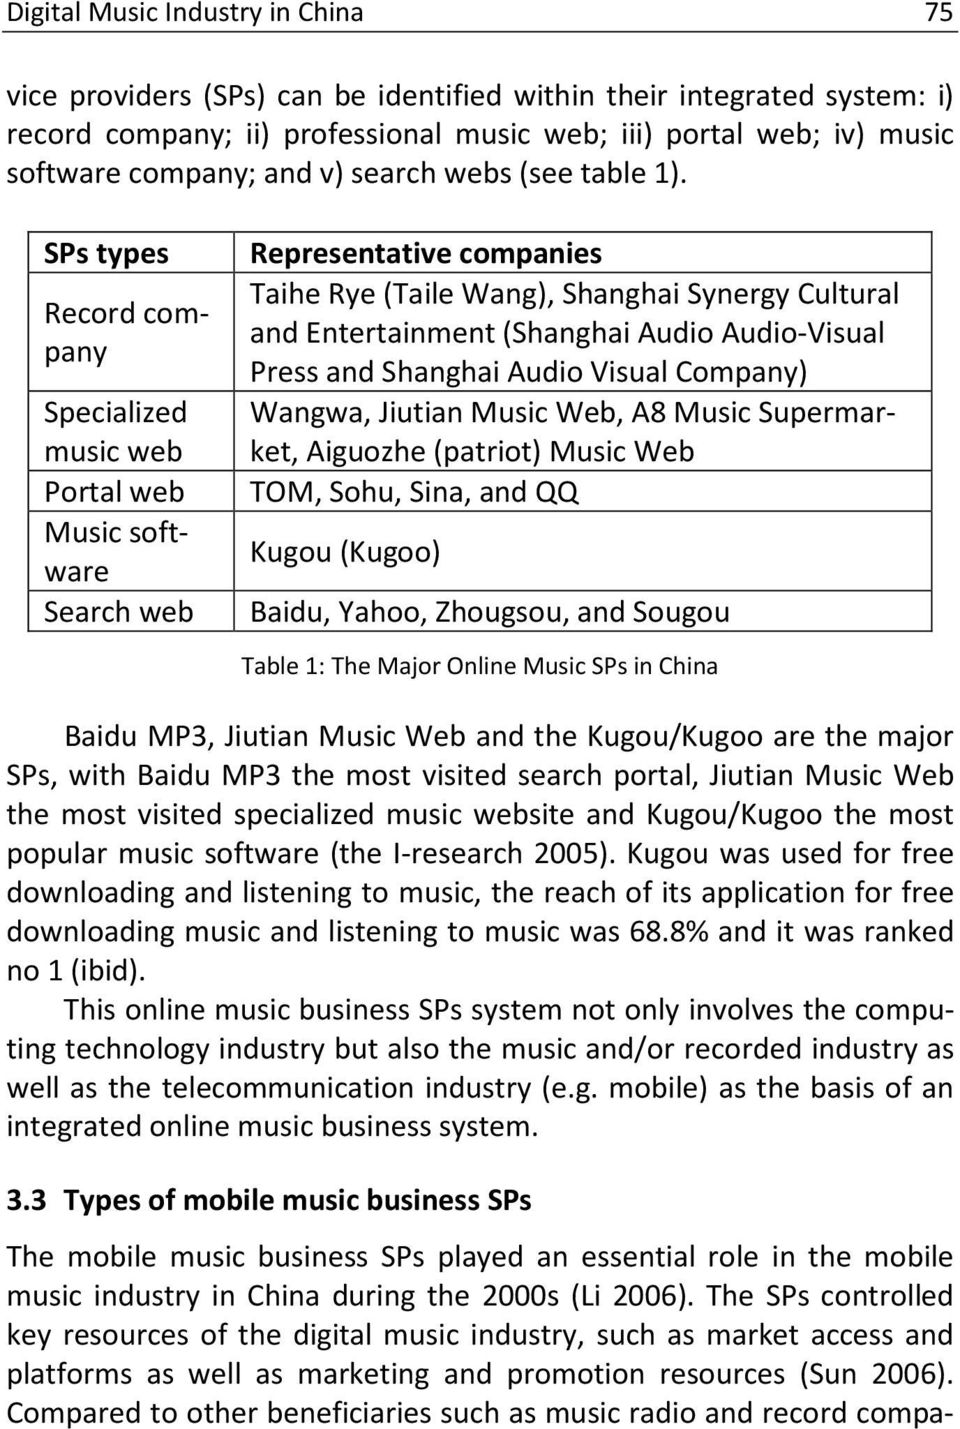 The development of the digital music industry in China